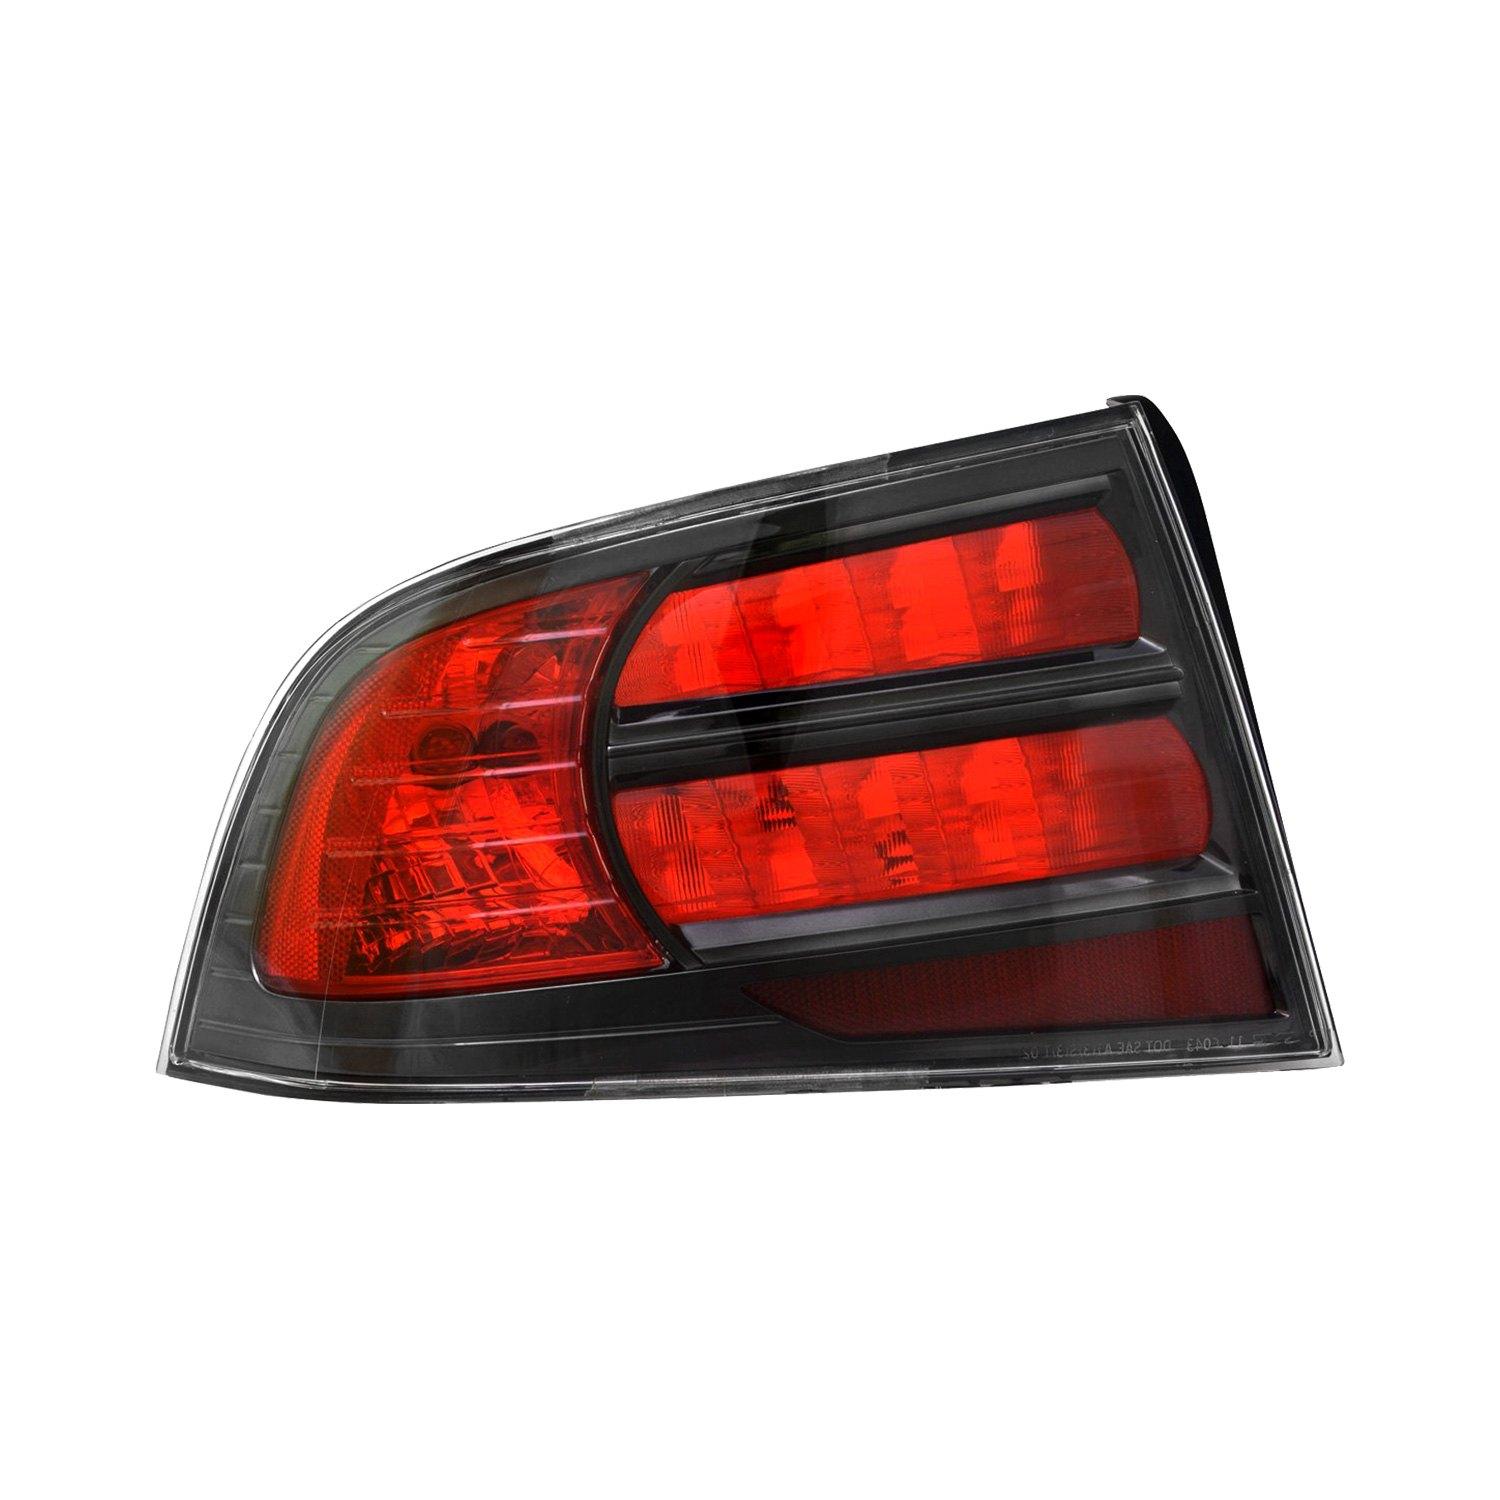 2007 Acura Tl Type S Price: Acura TL 2007-2008 Replacement Tail Light